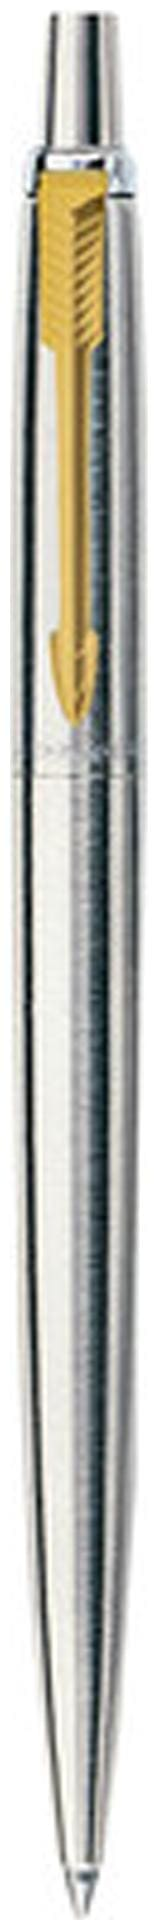 Parker Jotter Stainless Steel GT Ball Pen